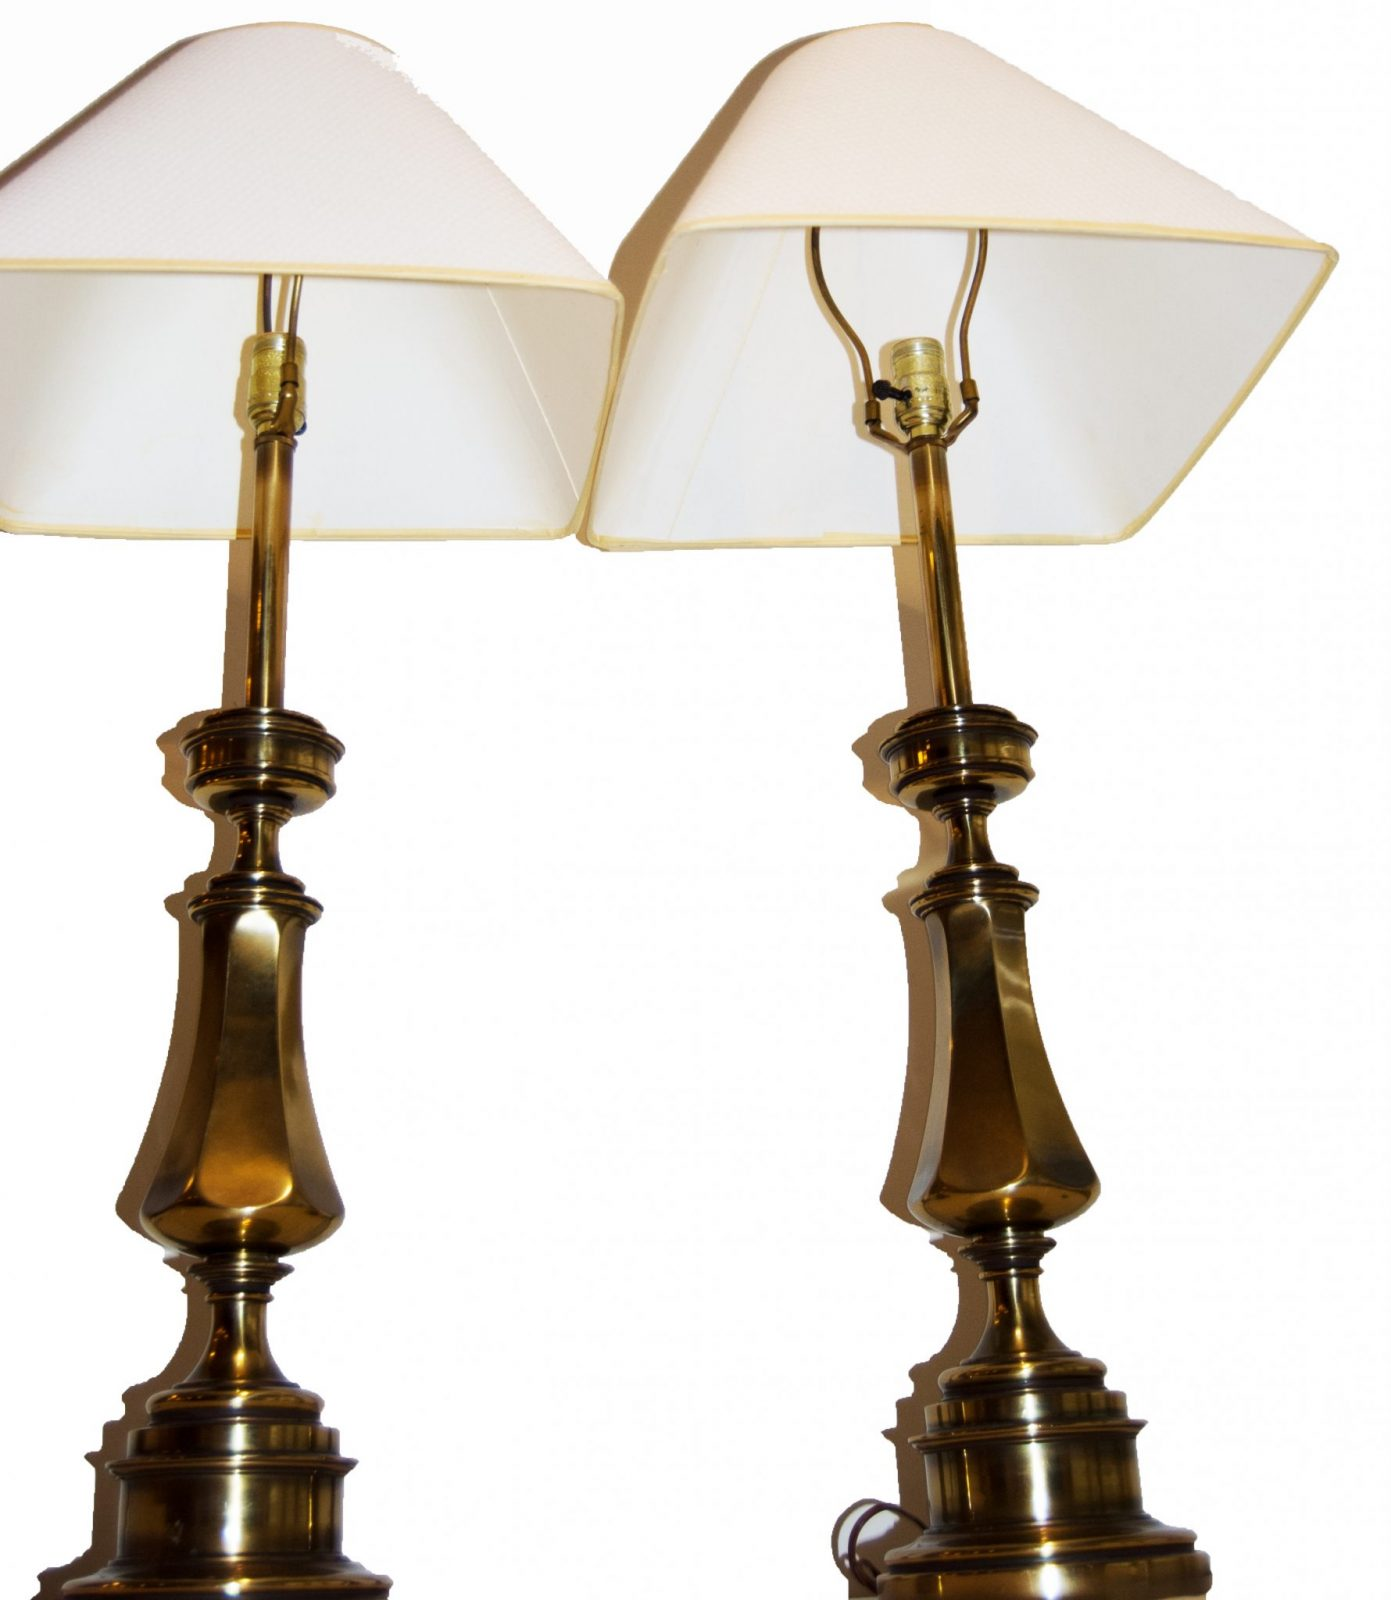 High End Table Lamps For Living Room Vintage Matching Brass Stiffel Table Lamps